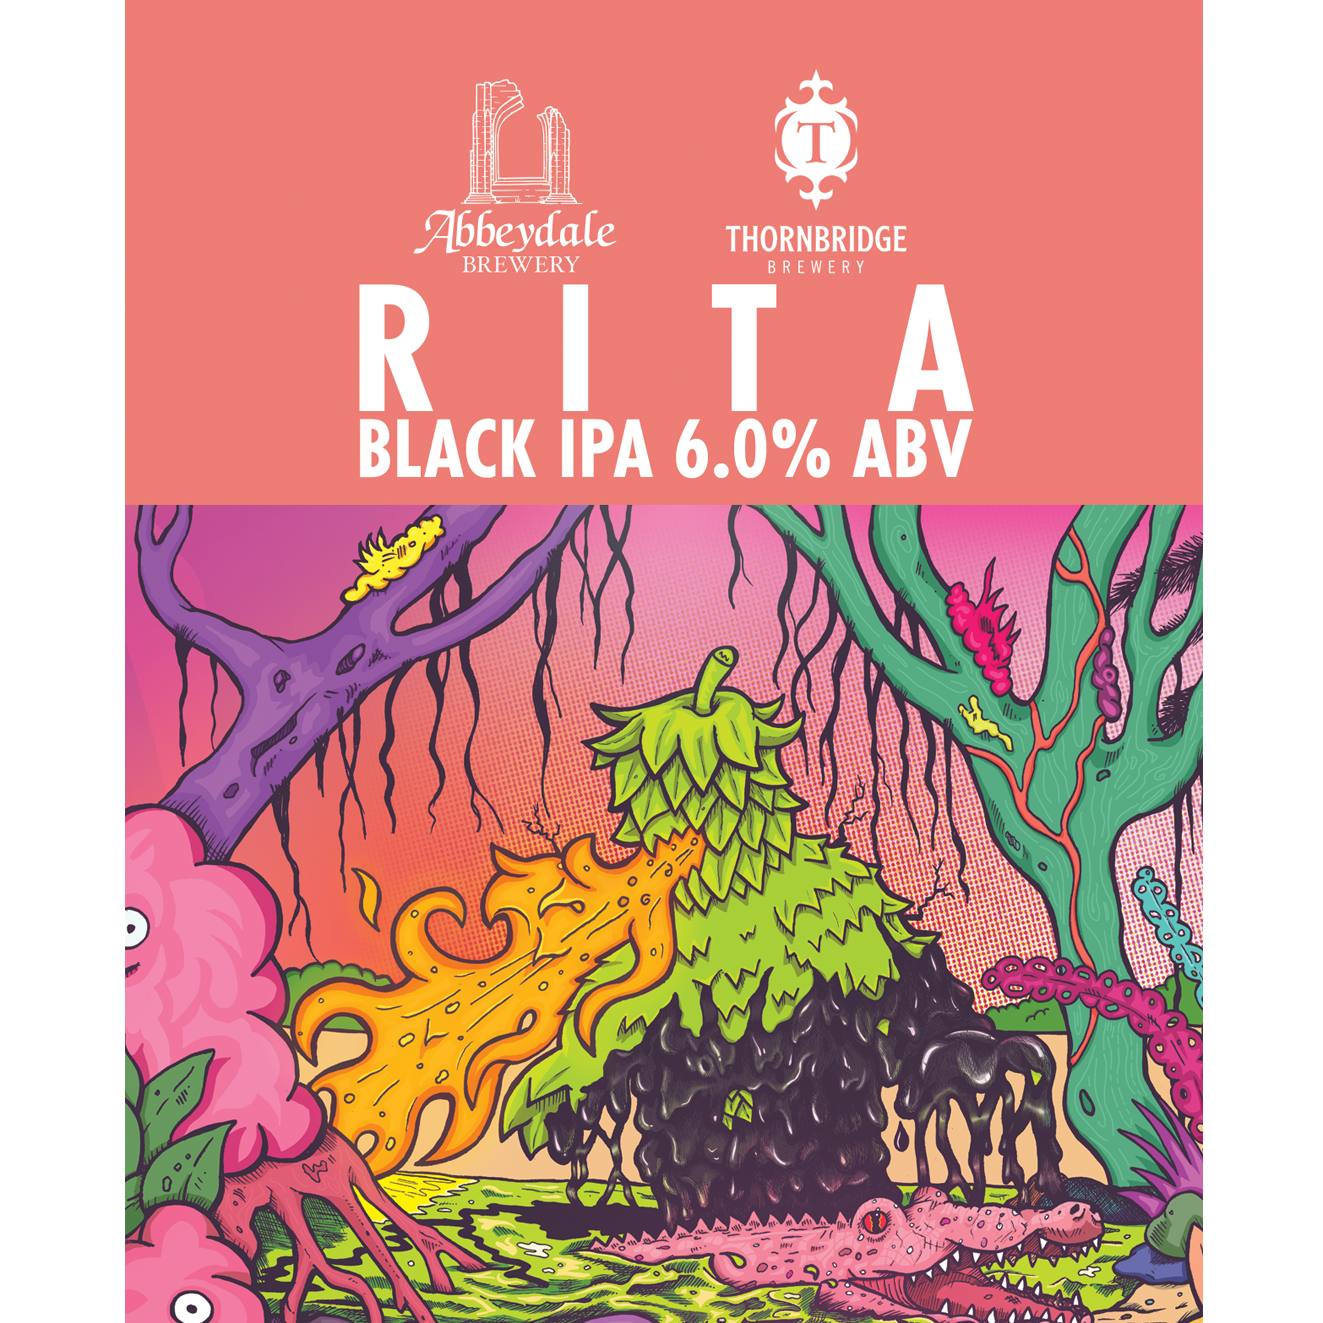 Craft Beer Label Illustration - Abbeydale Brewery x Thornbridge Brewery - Rita Black IPA Cask Artwork